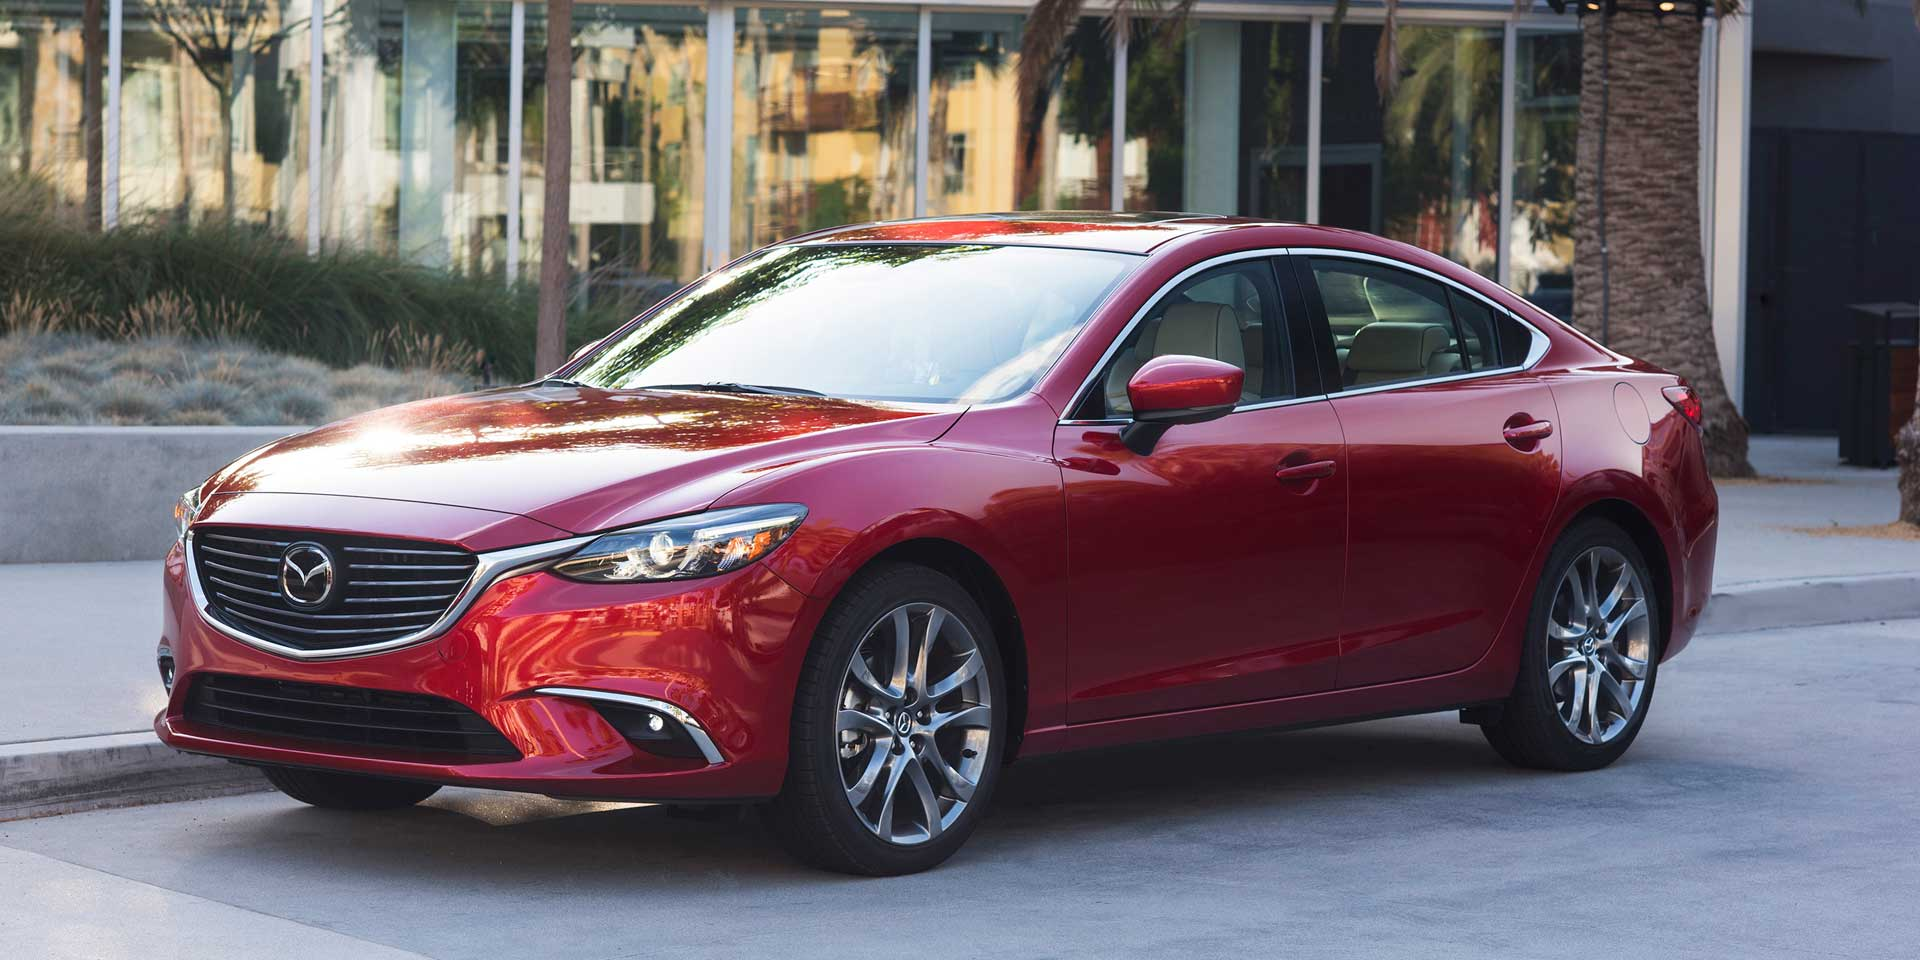 2017 Mazda 6 Sleek And Stylish The Is A Five Seat Four Door Mid Size Sedan That Competes Against Vehicles Like Ford Fusion Honda Accord